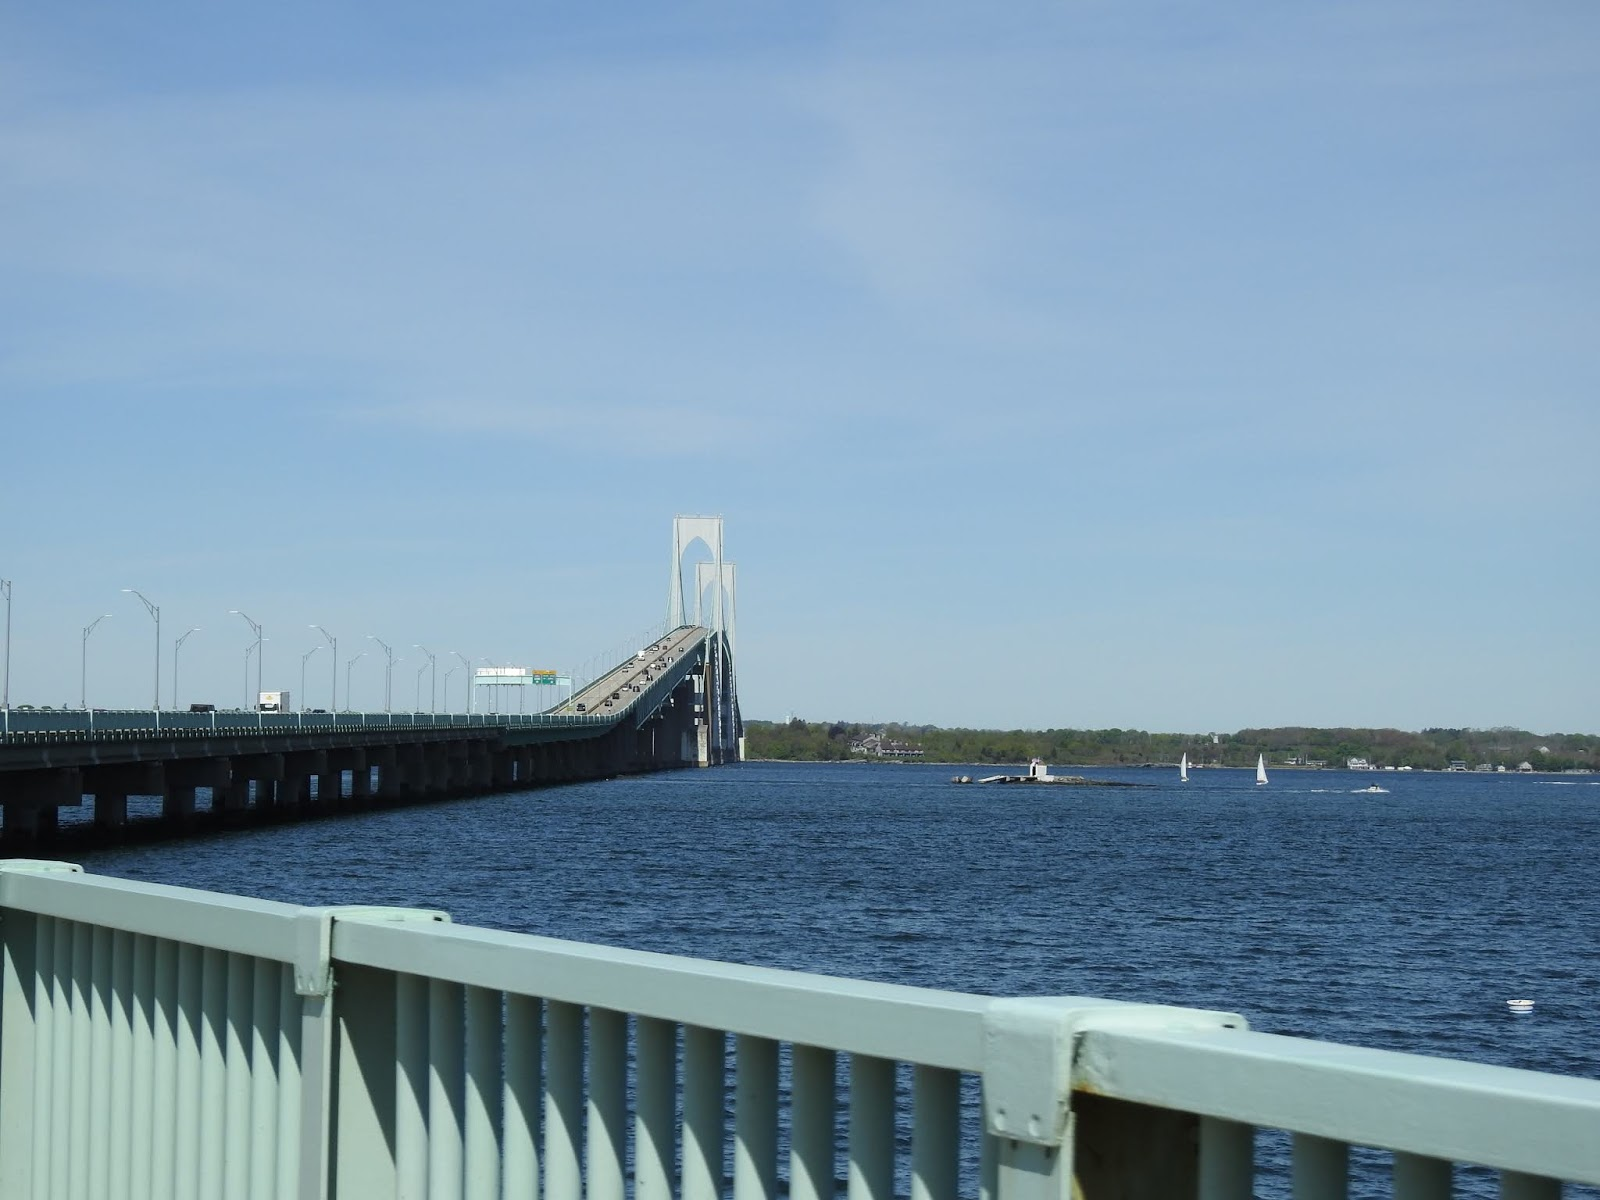 Claiborne Pell Bridge